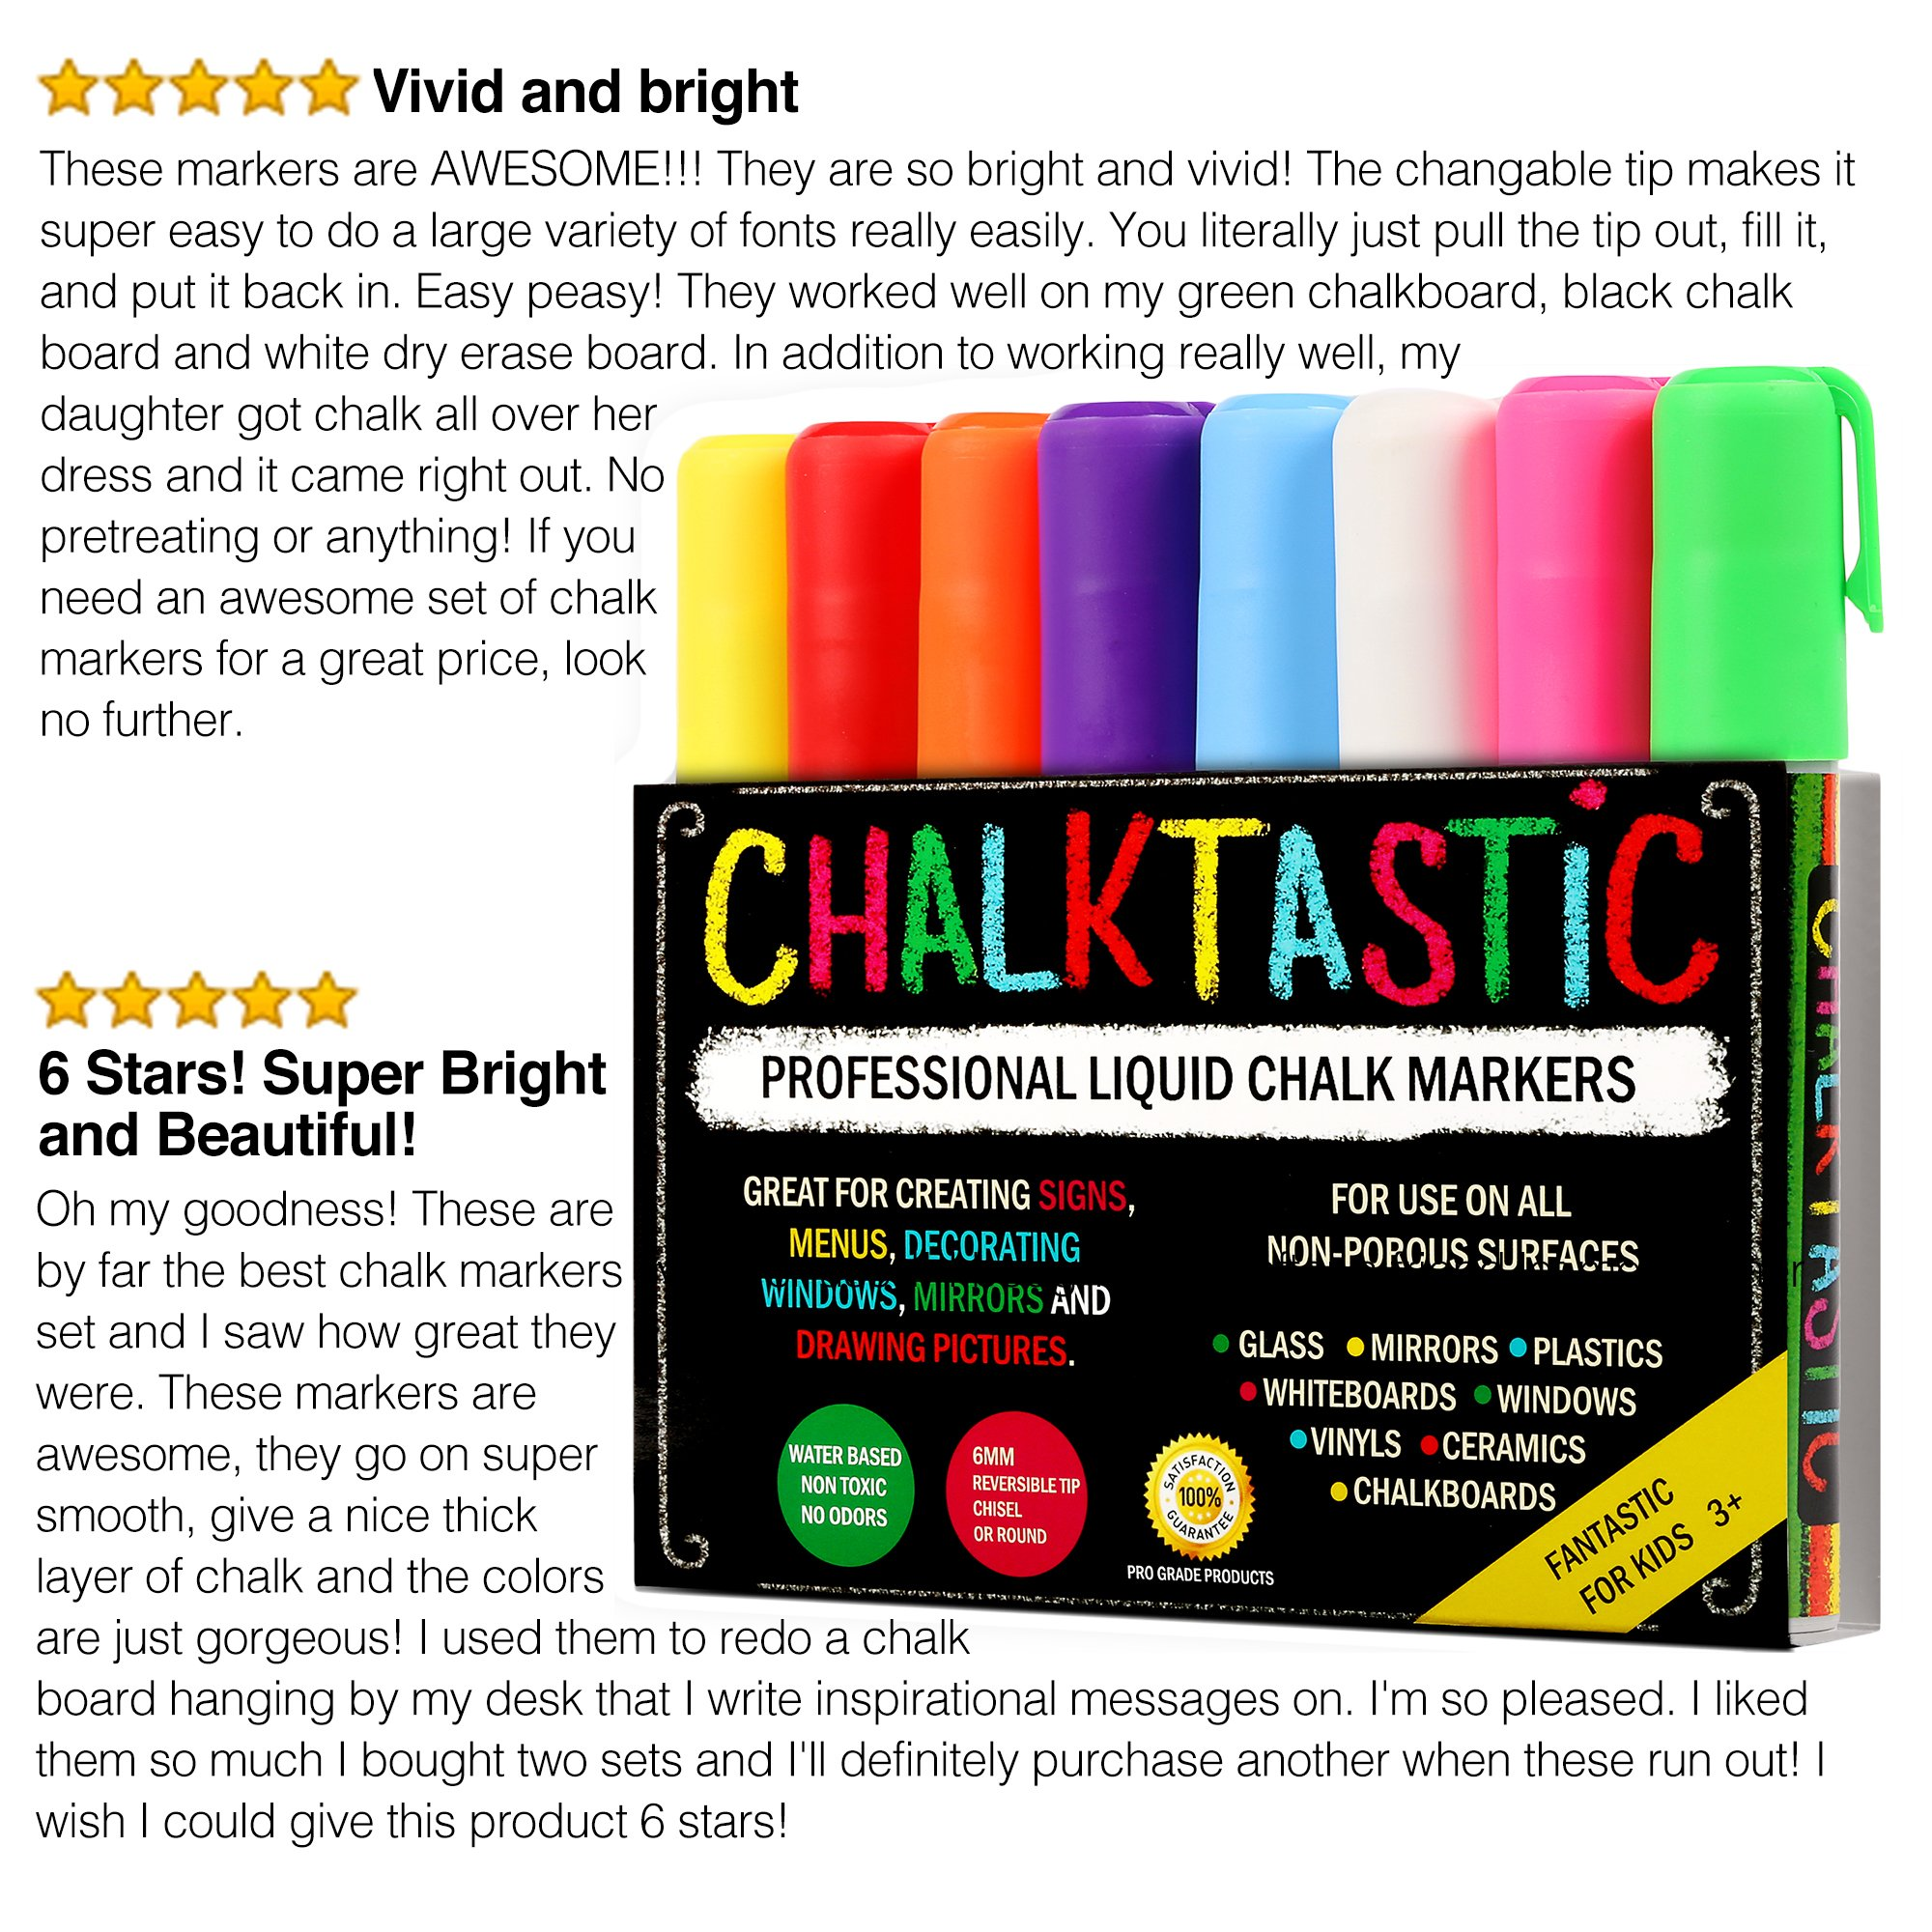 Chalktastic Chalk Markers by Fantastic Best for Kids Art, Chalkboard Labels, Menu Board Bistro Boards, 8 Glass Window Markers, Non-Toxic Erasable Liquid Pens Chisel or Fine Tip, Neon Colors